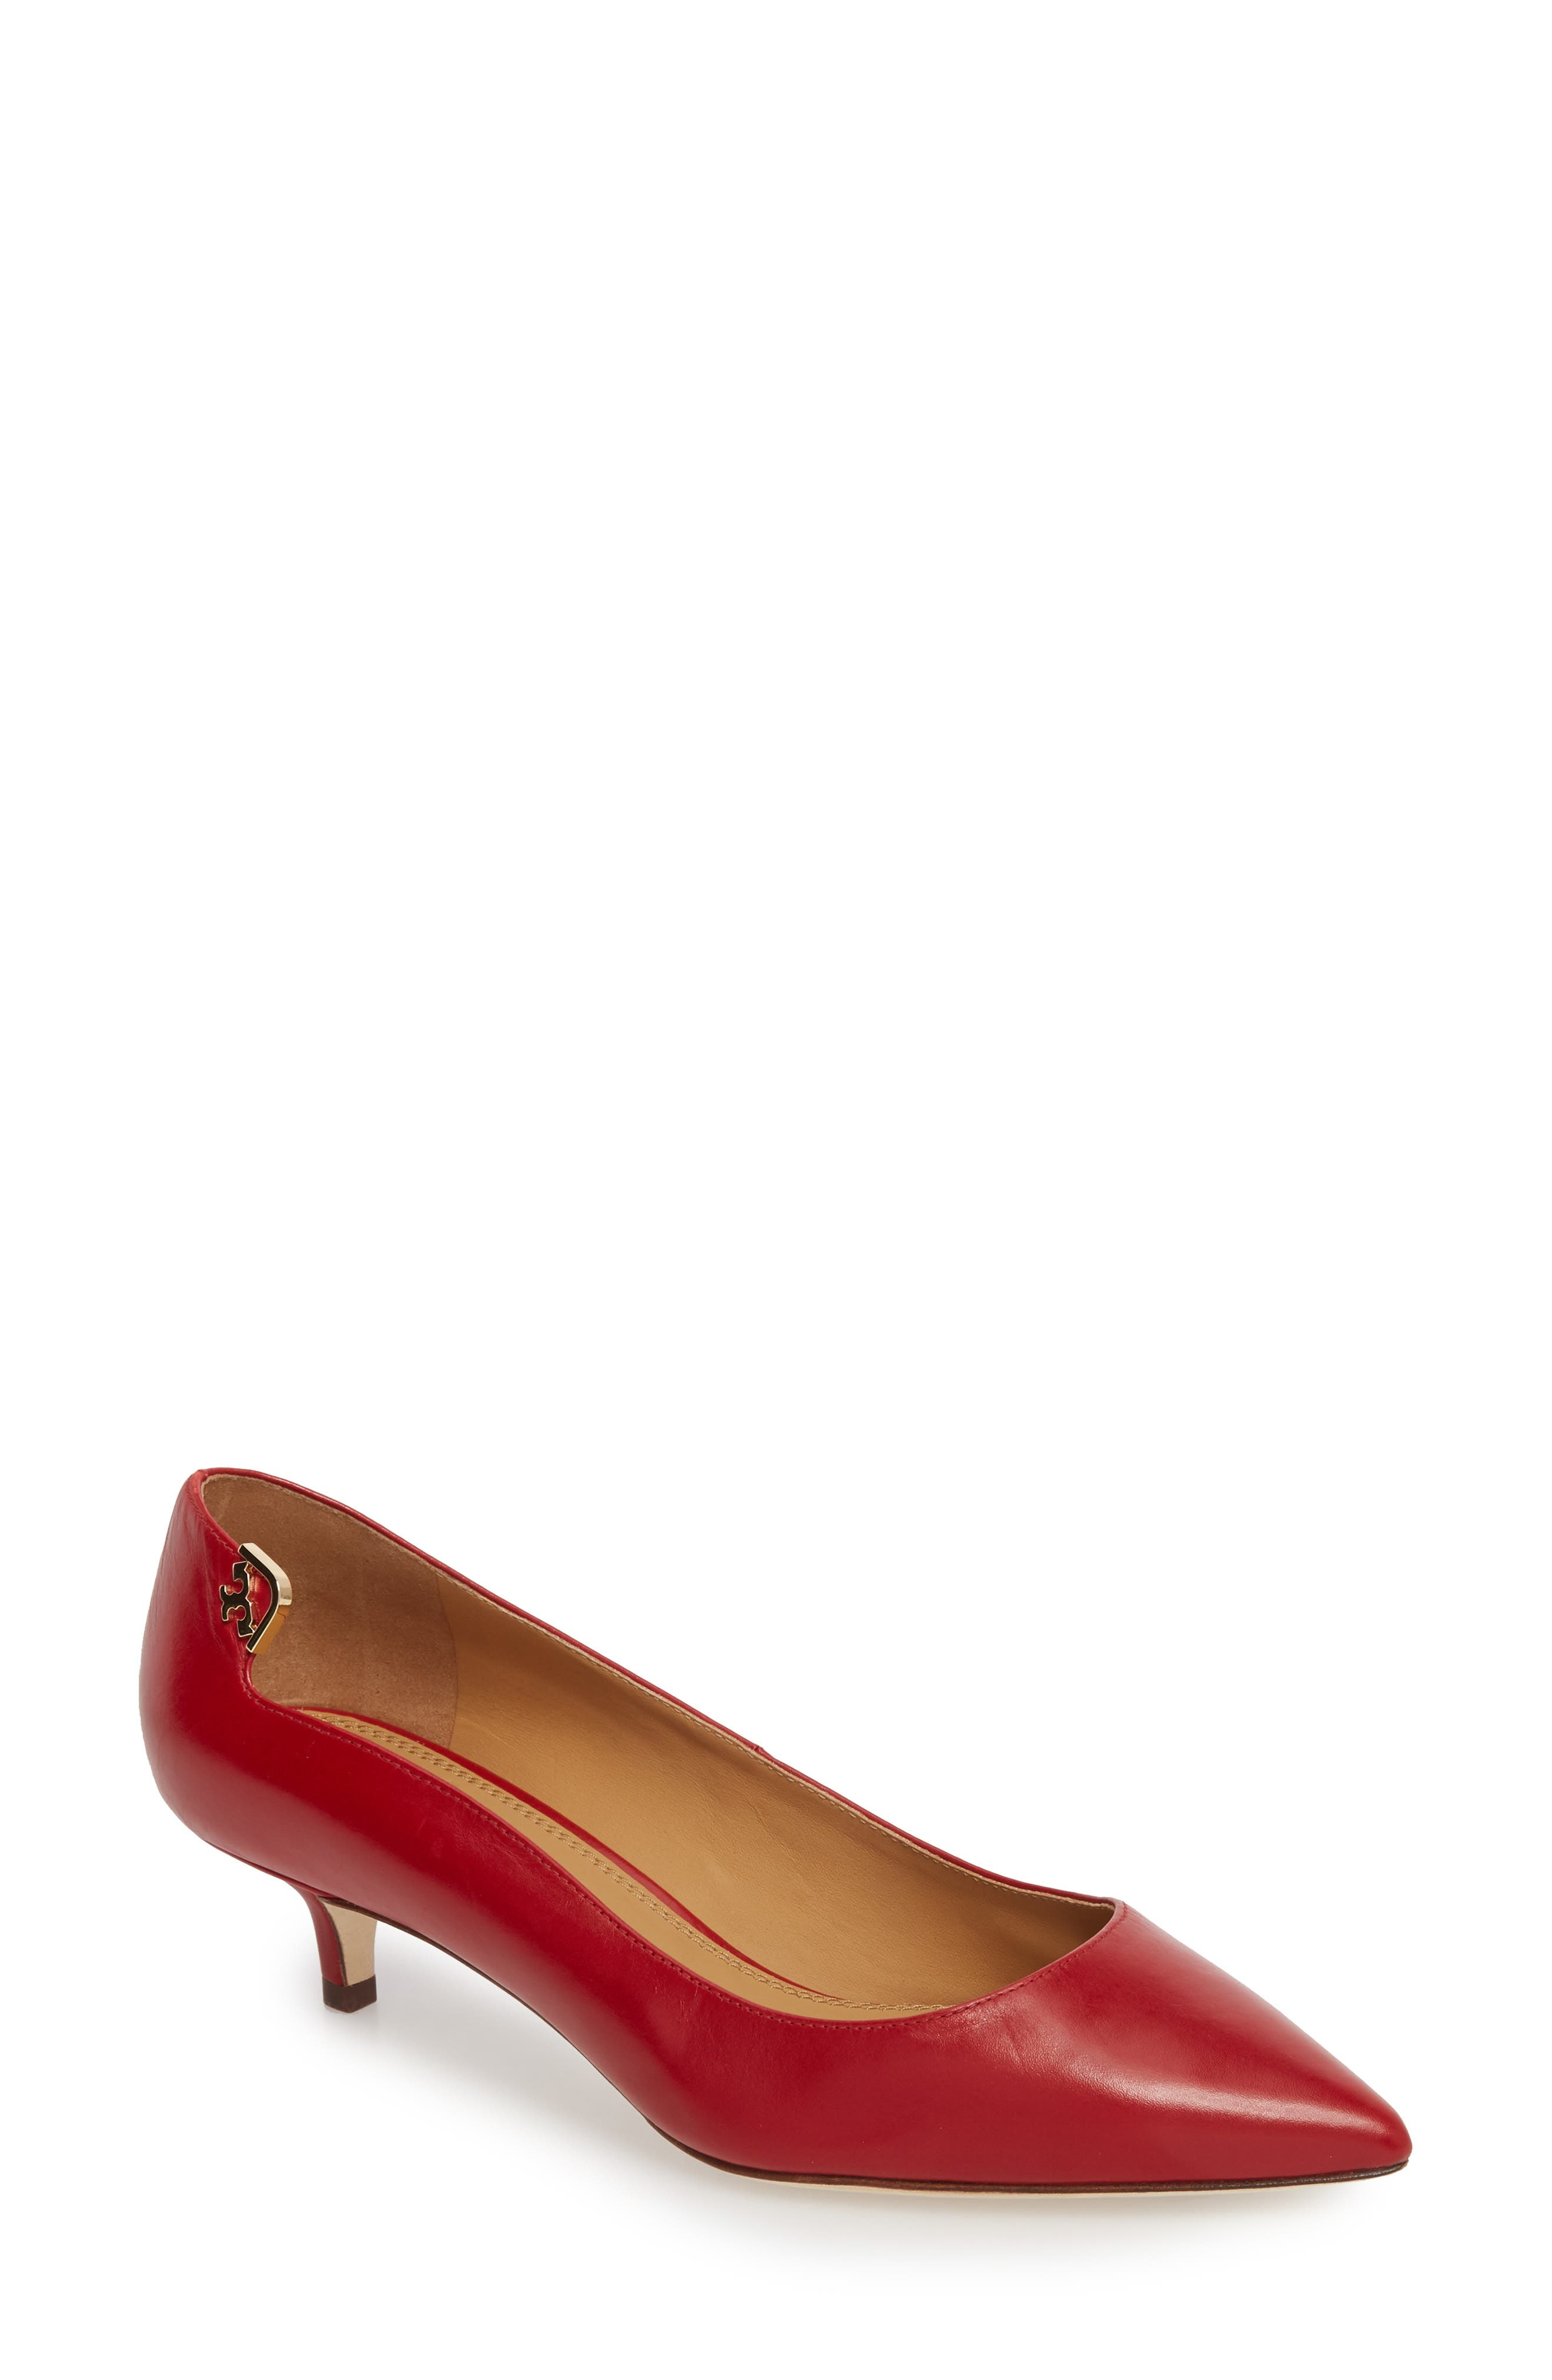 TORY BURCH,                             Elizabeth Pointy Toe Pump,                             Main thumbnail 1, color,                             601